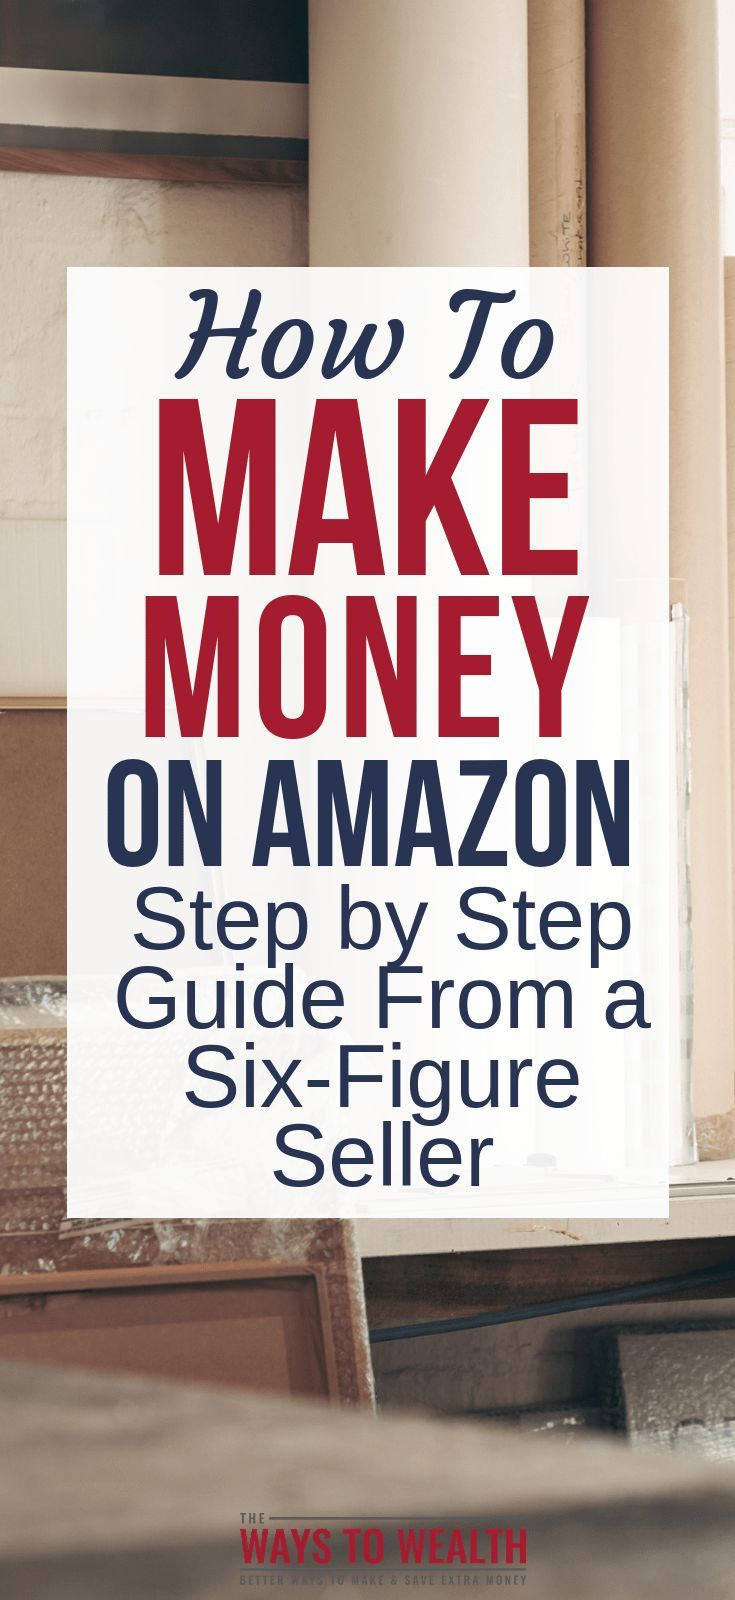 How To Make Money On Amazon (The Definitive Guide 2019) – #amazon #Definitive #G… – Katherine